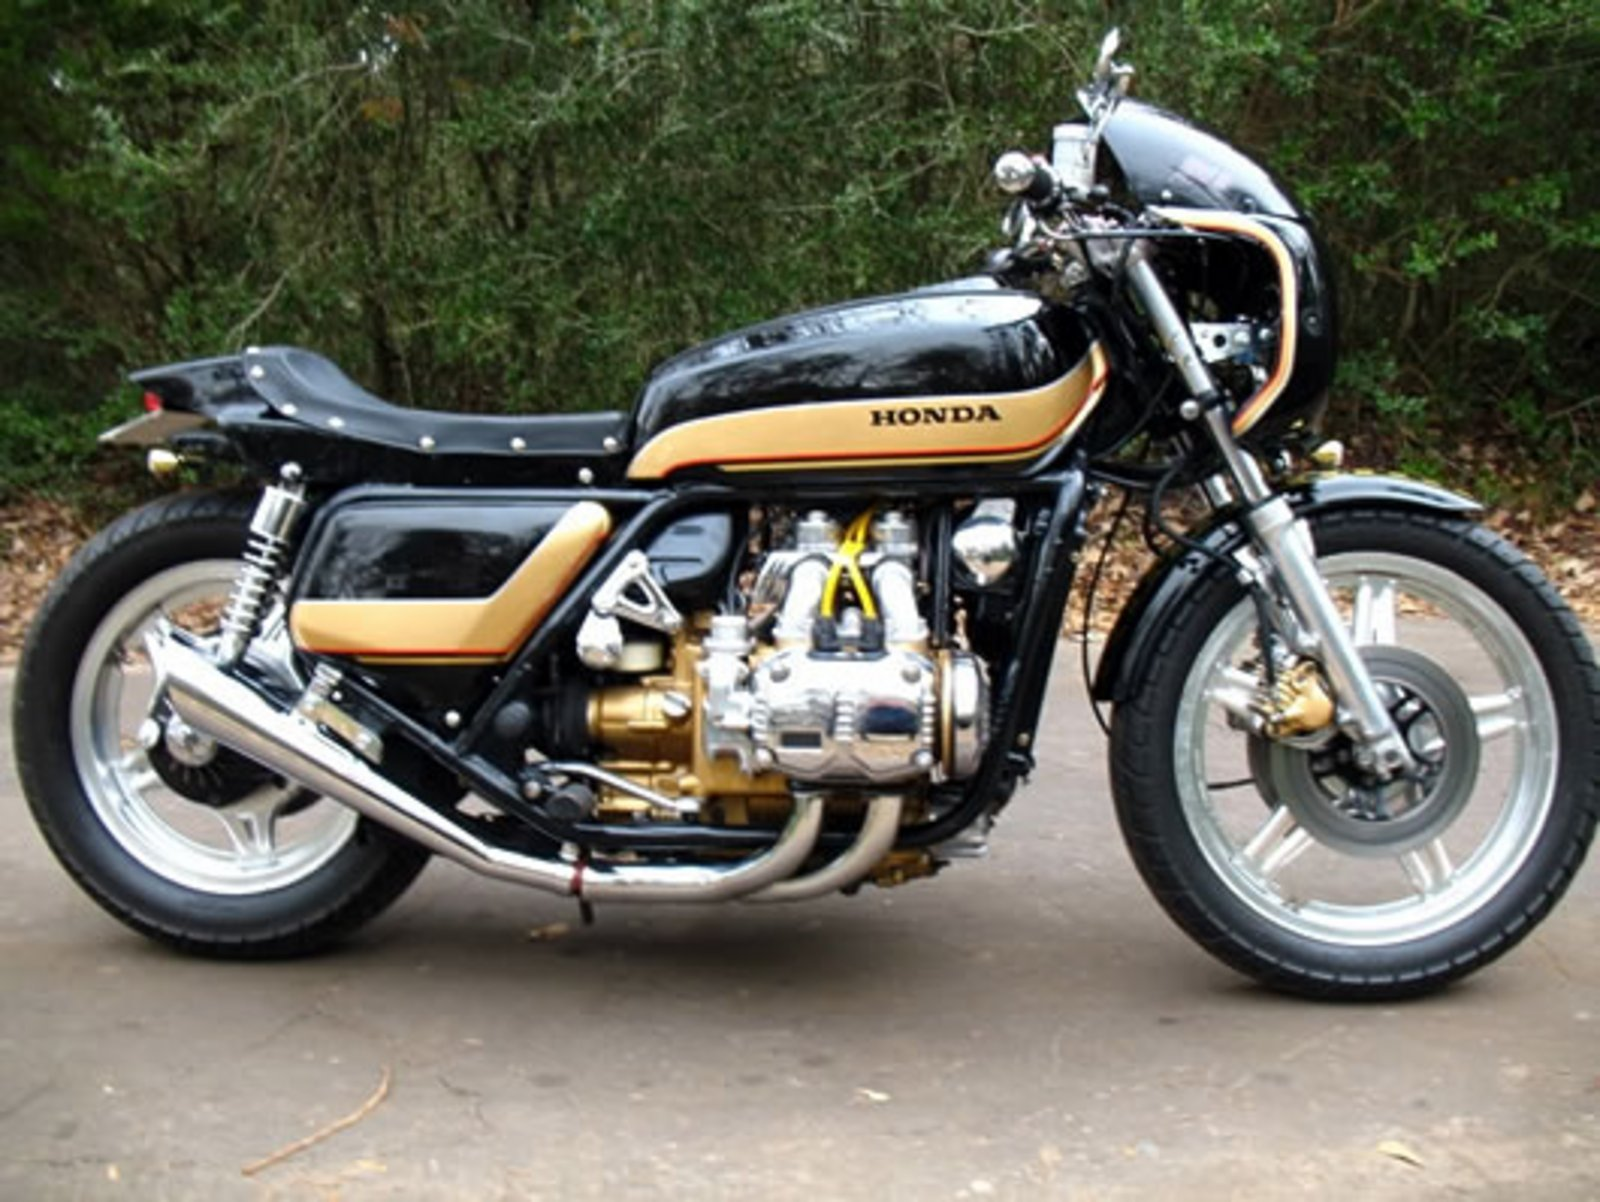 1976 Honda Gold Wing GL1000 turned into café racer